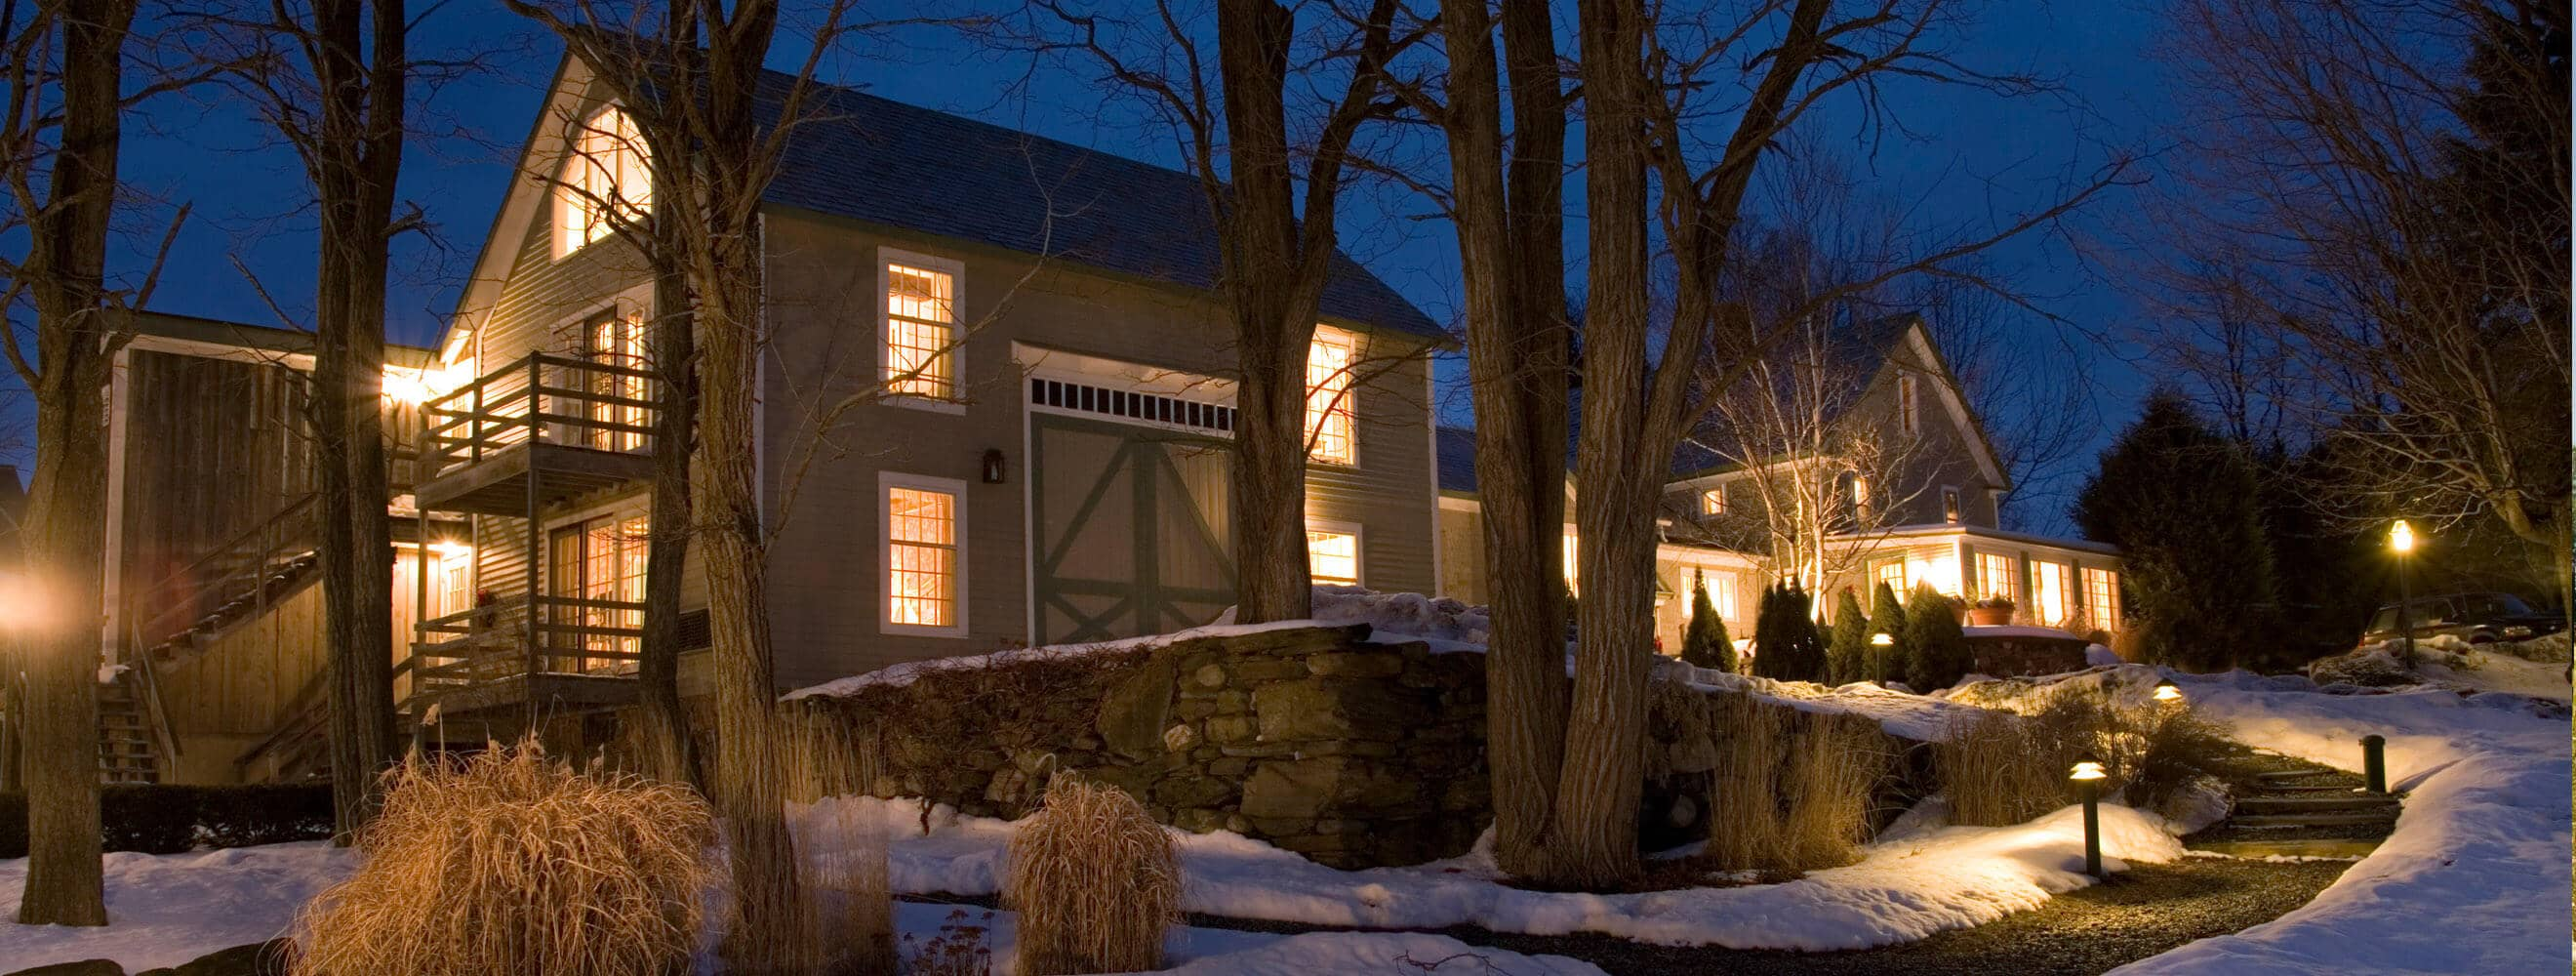 night exterior of a country inn with snow on the ground